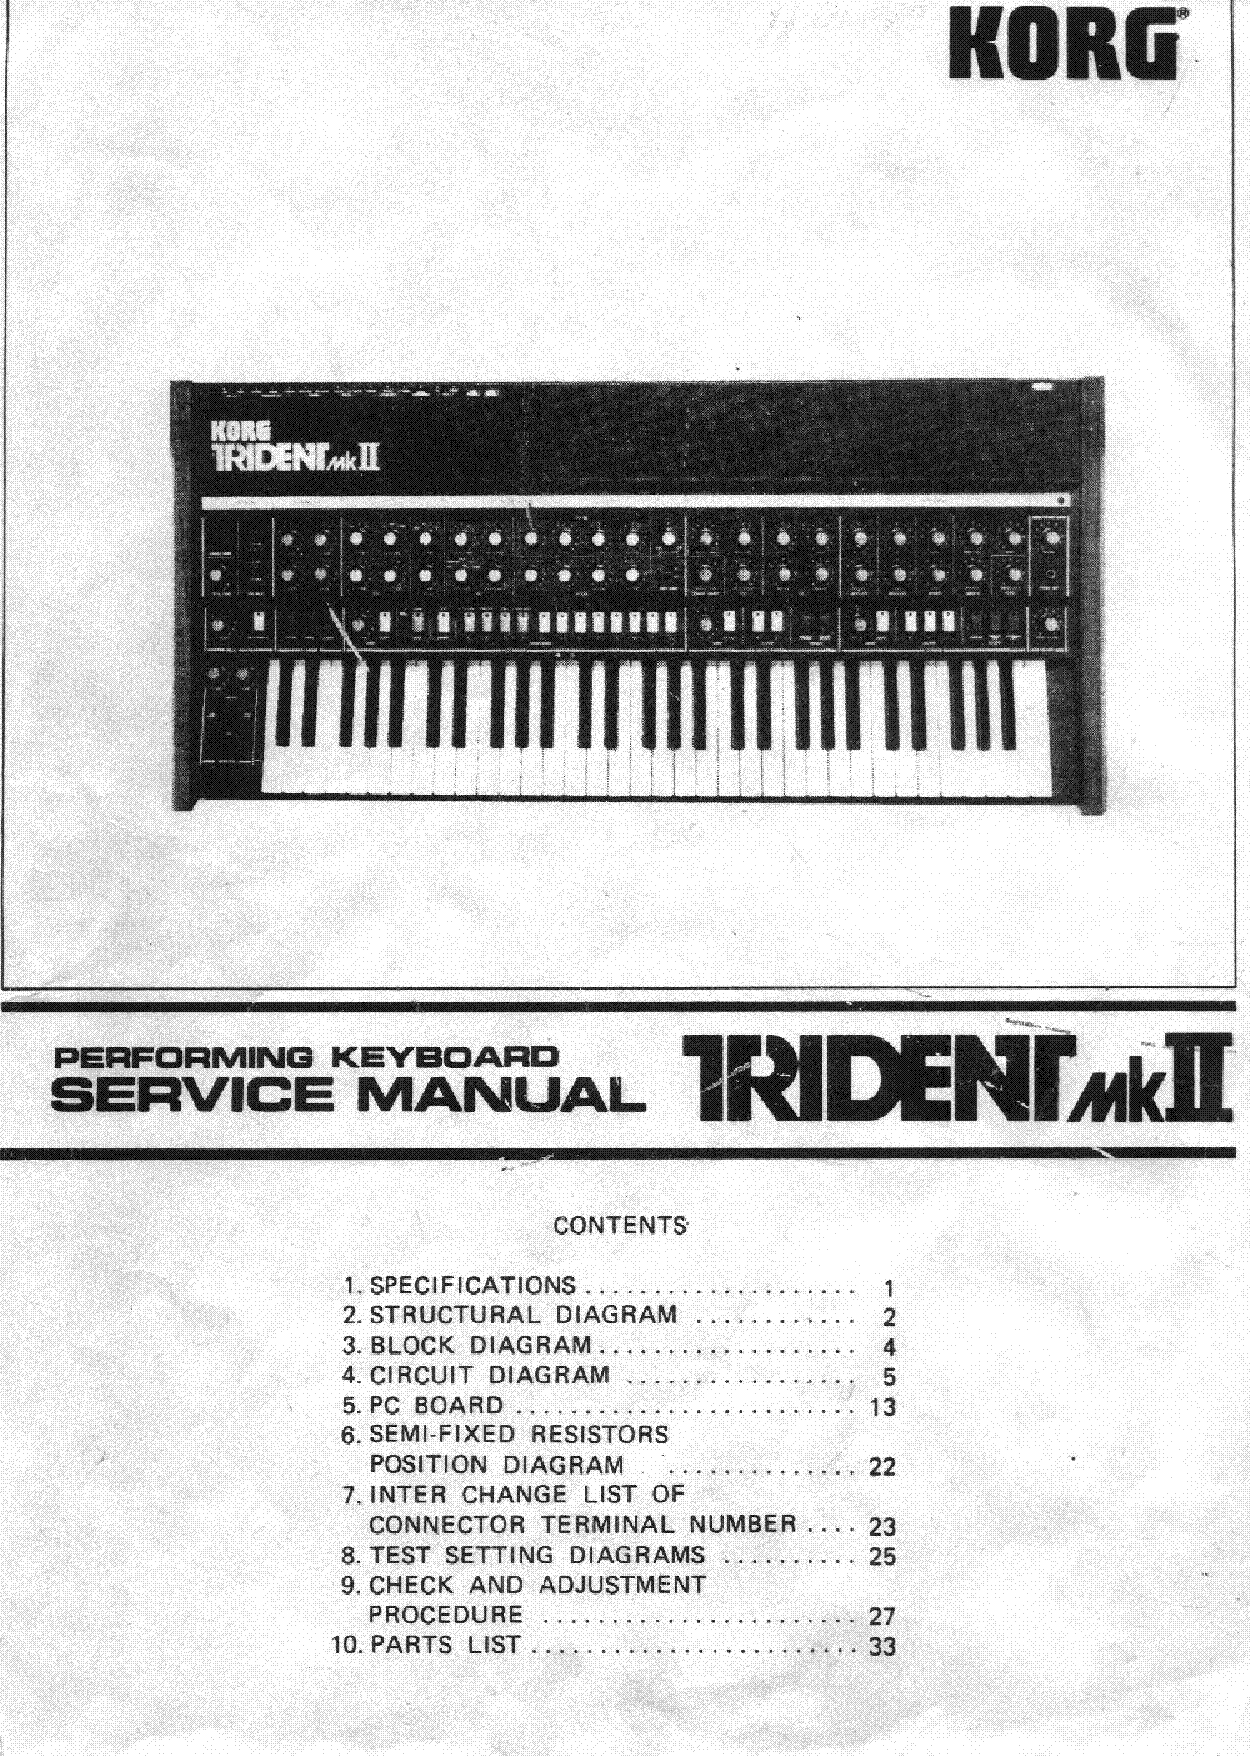 Korg Sas 20 Sm Service Manual Download Schematics Eeprom Repair Electronic Keyboard Circuit Diagram